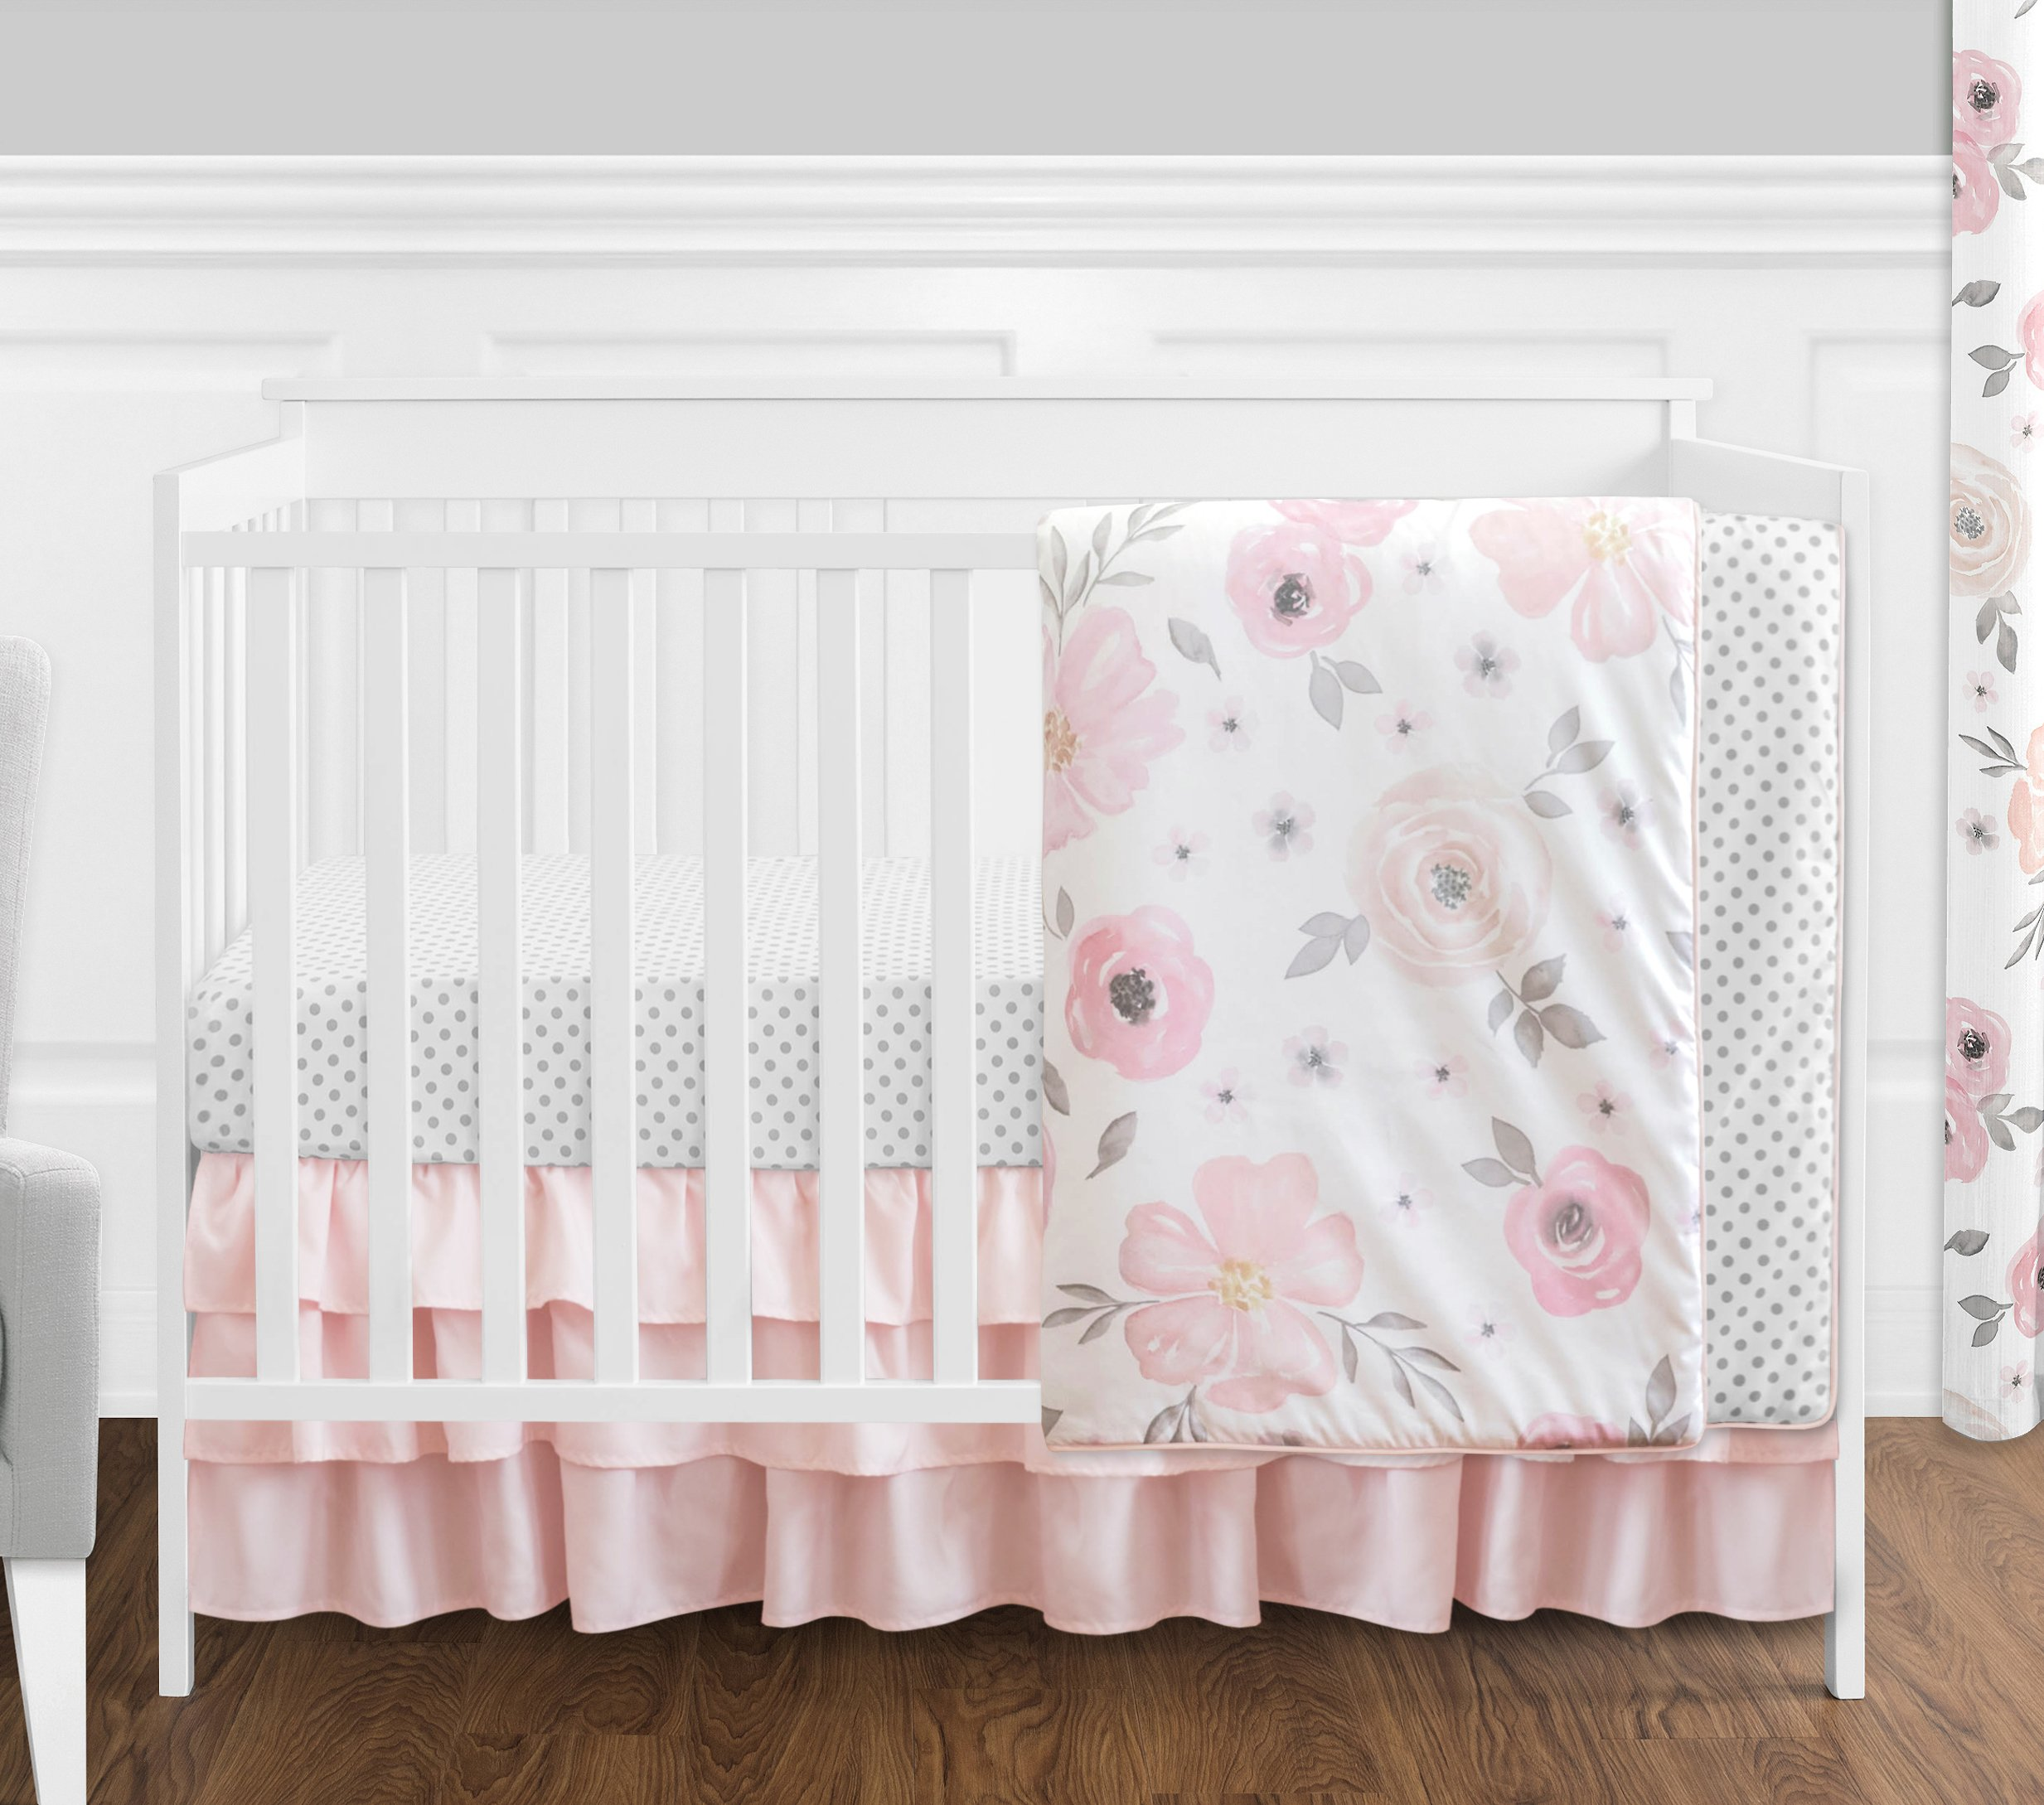 4 pc. Blush Pink, Grey and White Watercolor Floral Baby Girl Crib Bedding Set without Bumper by Sweet Jojo Designs - Rose Flower Polka Dot by Sweet Jojo Designs